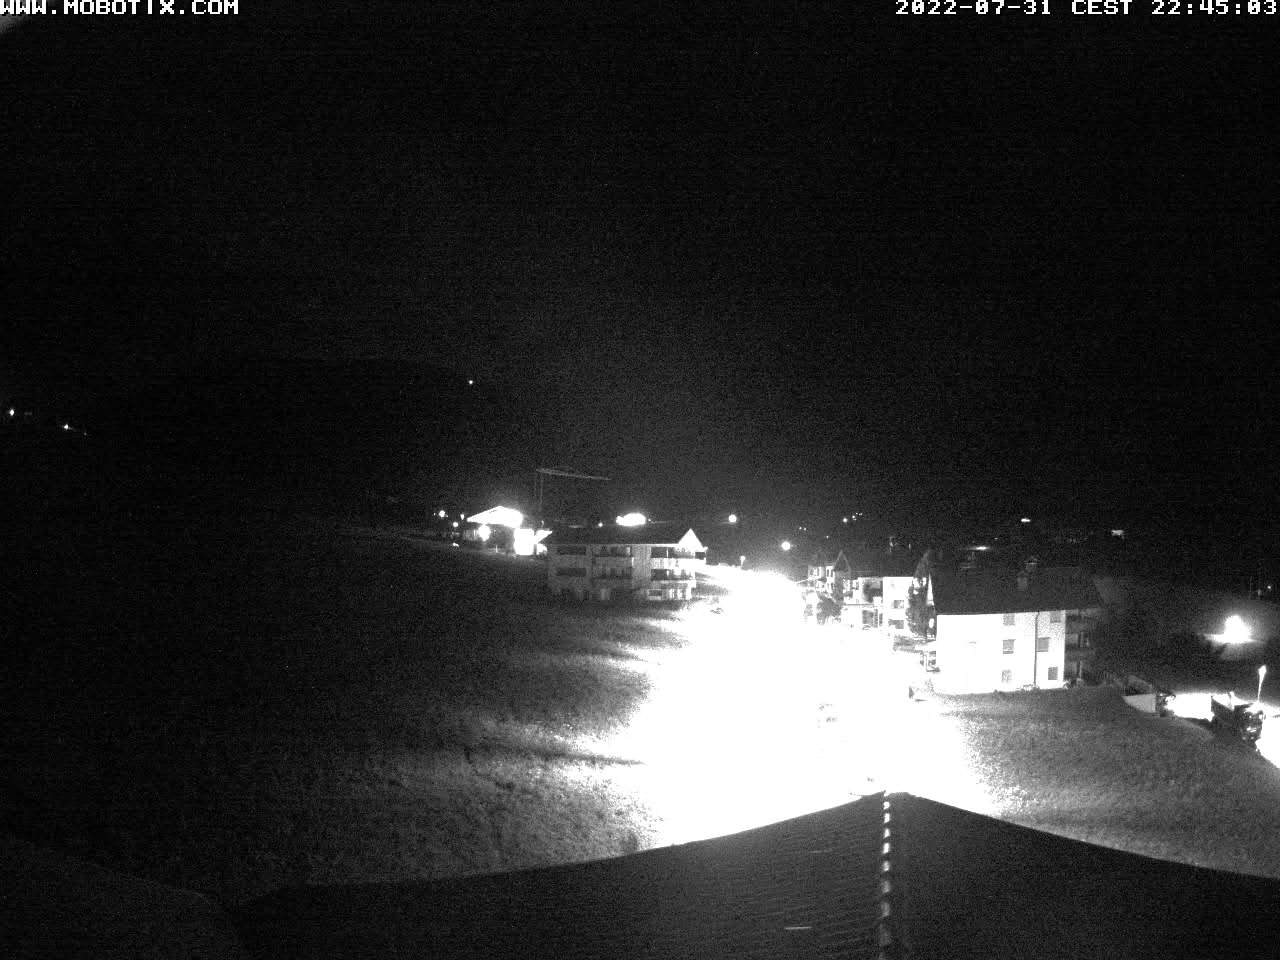 http://www.gsieserhof.com/webcam/current.jpg